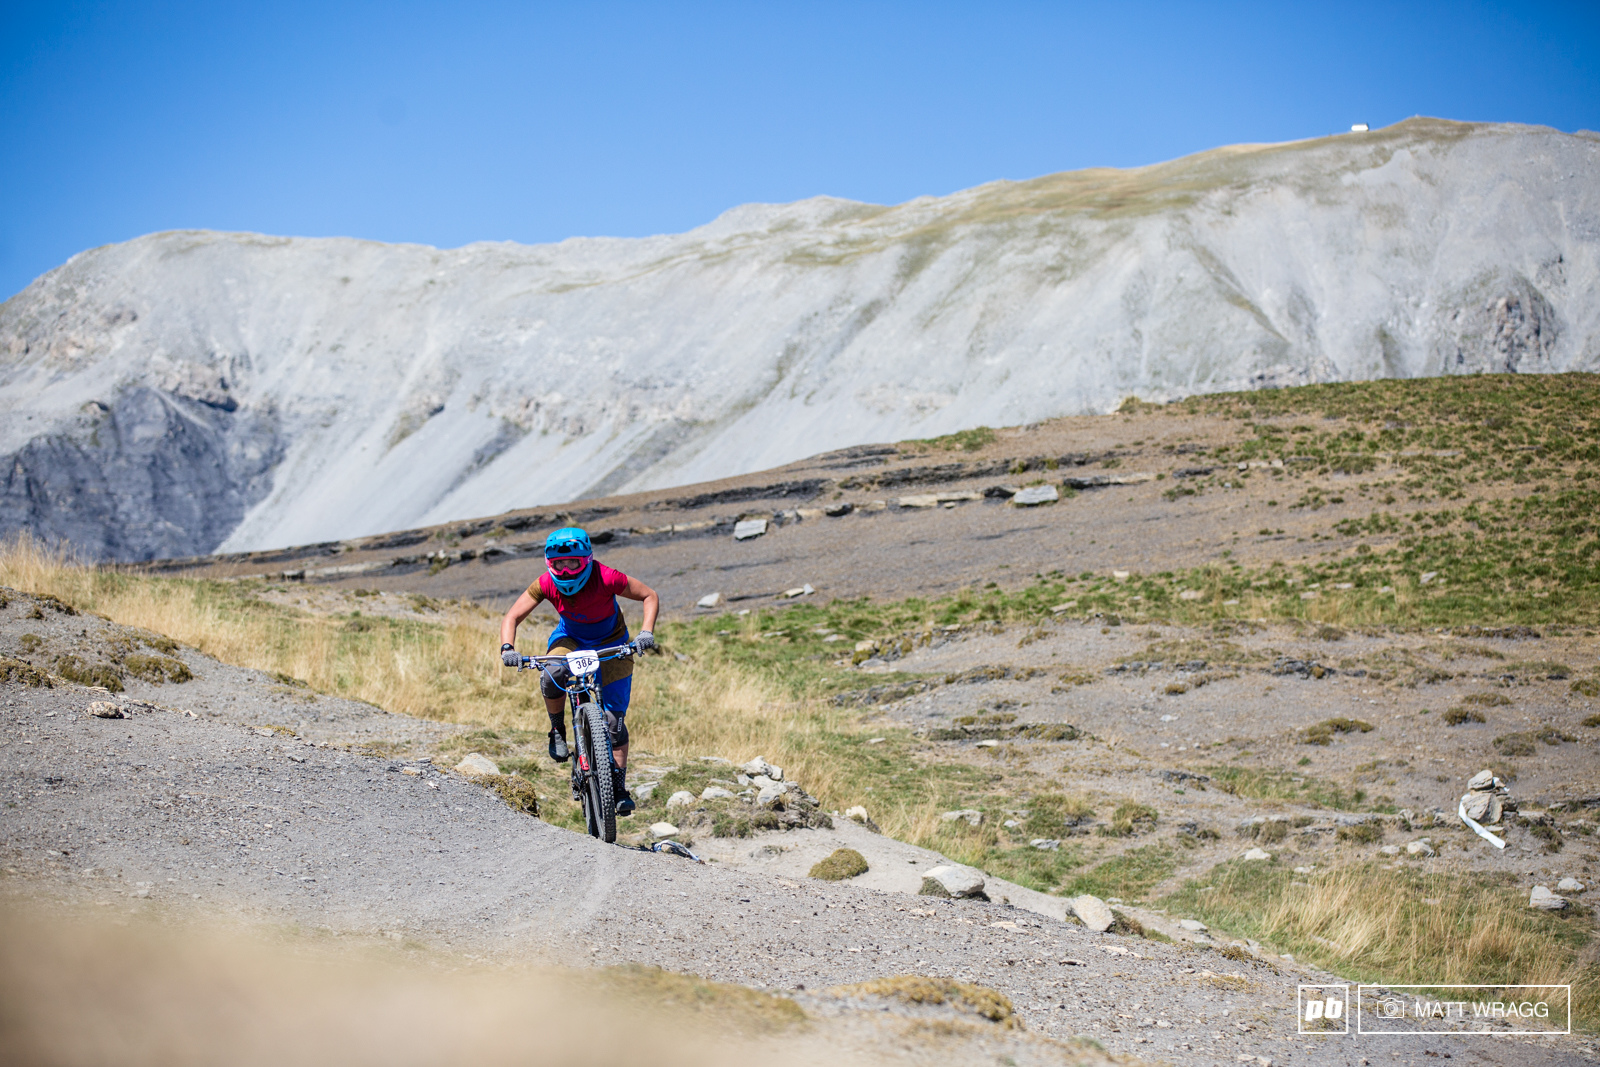 On the other side of the mountain the wind has blown away the grass and riders dropped into a barren lunar landscape.